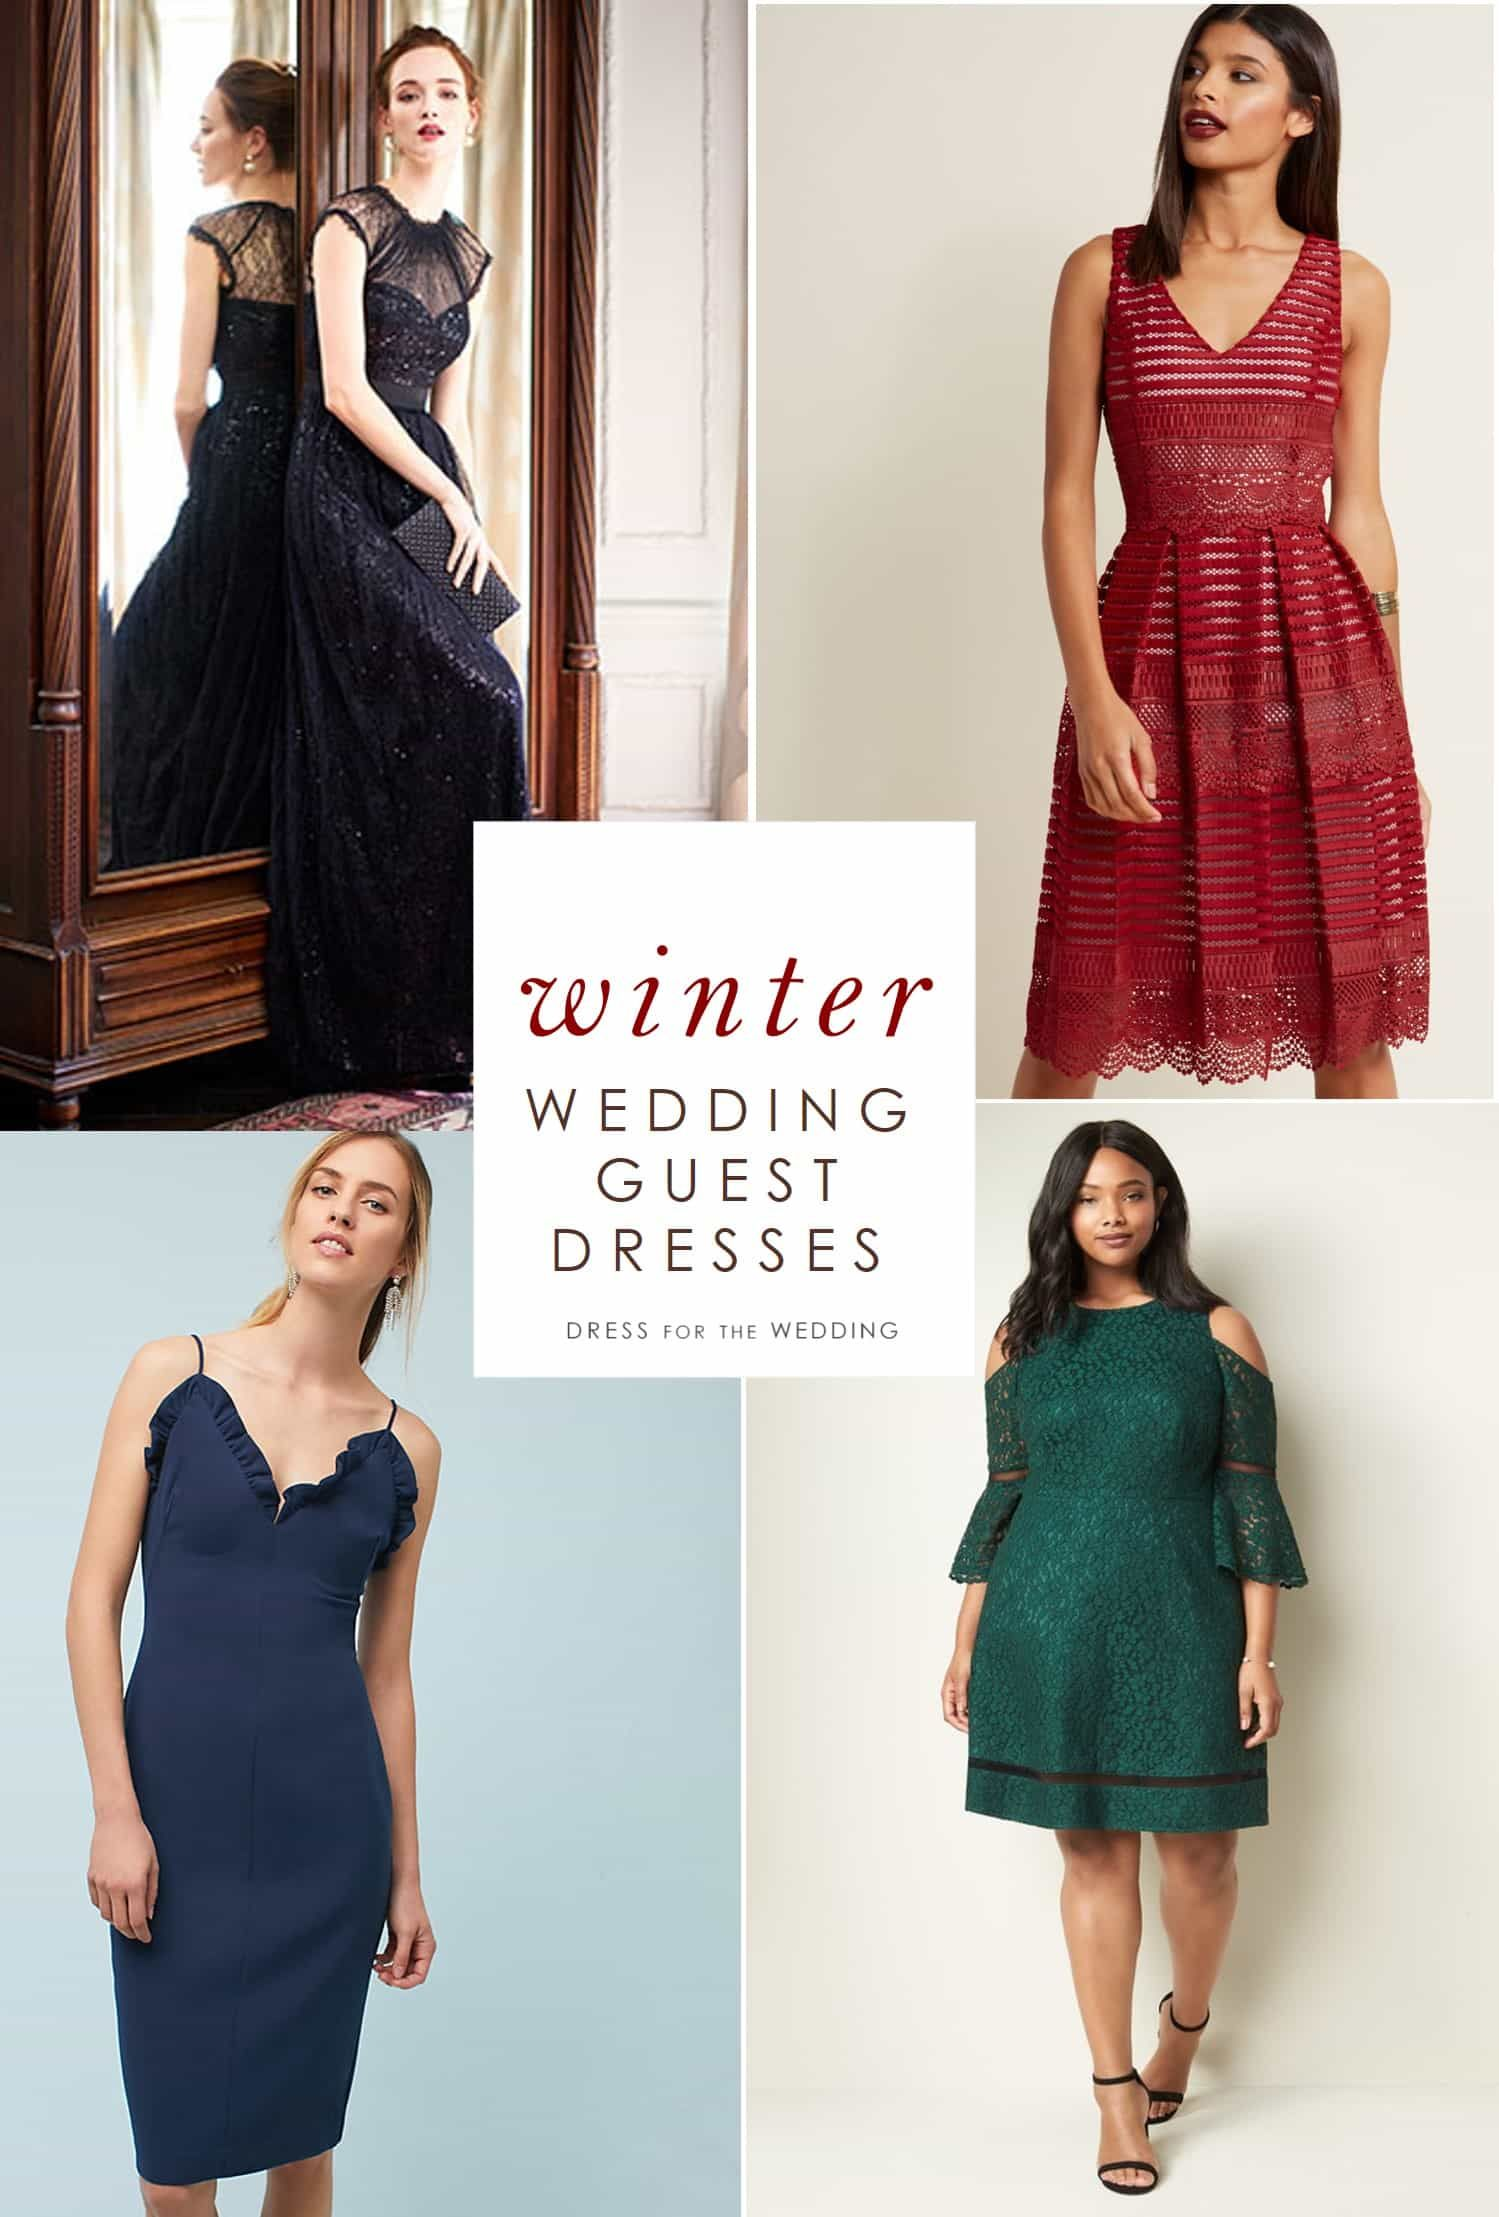 Winter Wedding Guest Dresses Dress For The Wedding Winter Wedding Dress Guest Winter Wedding Guest Dress Wedding Guest Outfit Winter [ 2217 x 1499 Pixel ]